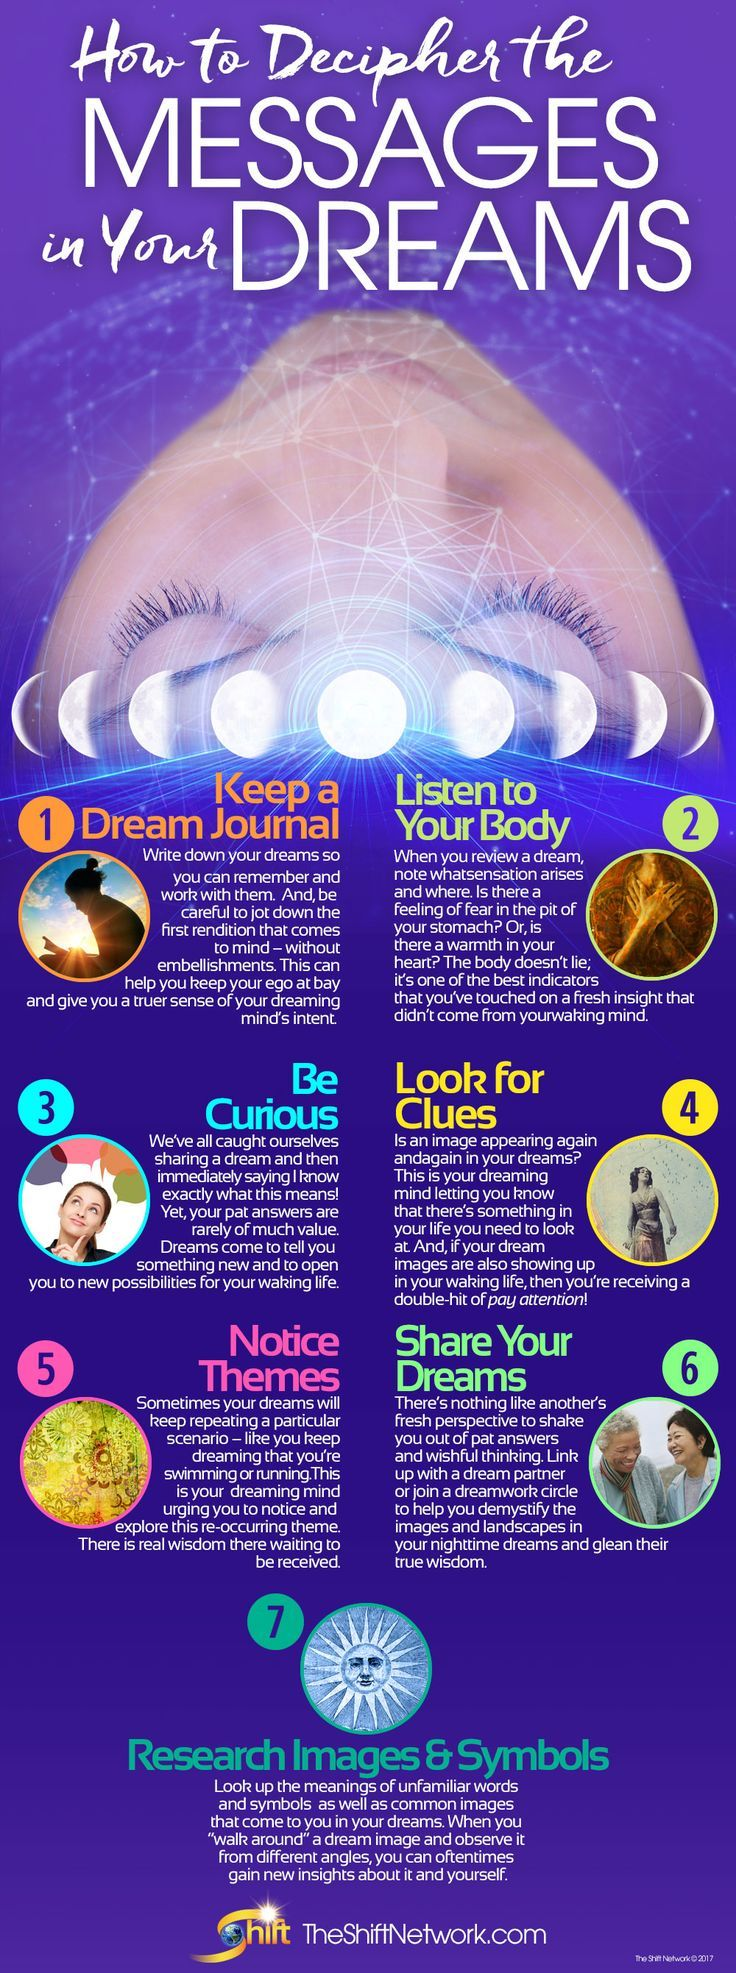 65 best dreaming dream interpretation images on pinterest have you ever deciphered your dreams or wished you could go back through the doorway of biocorpaavc Choice Image